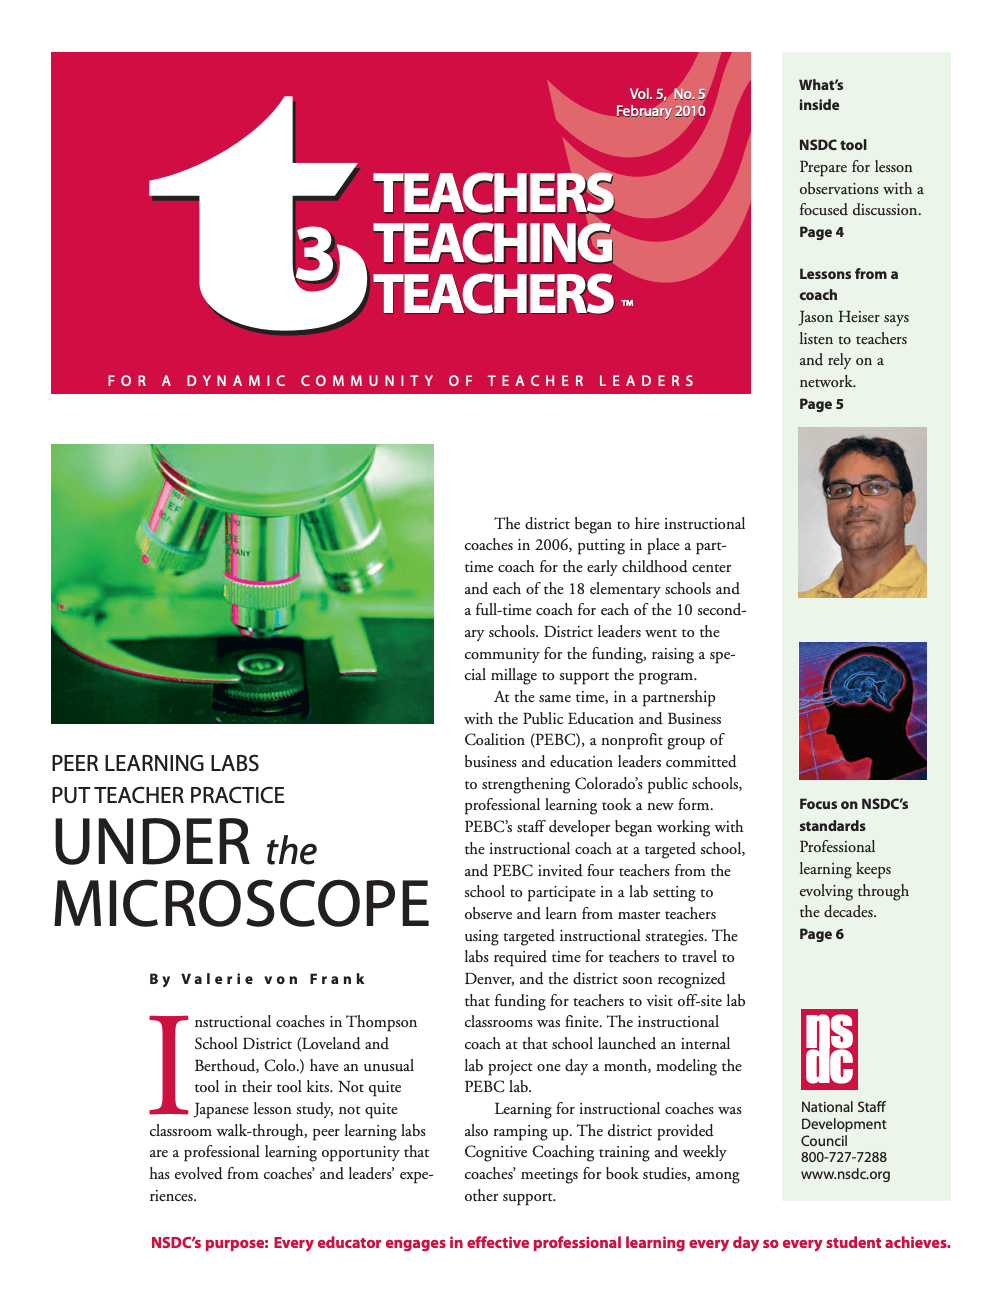 teachers-teaching-teachers-february-2010-vol-5-no-5